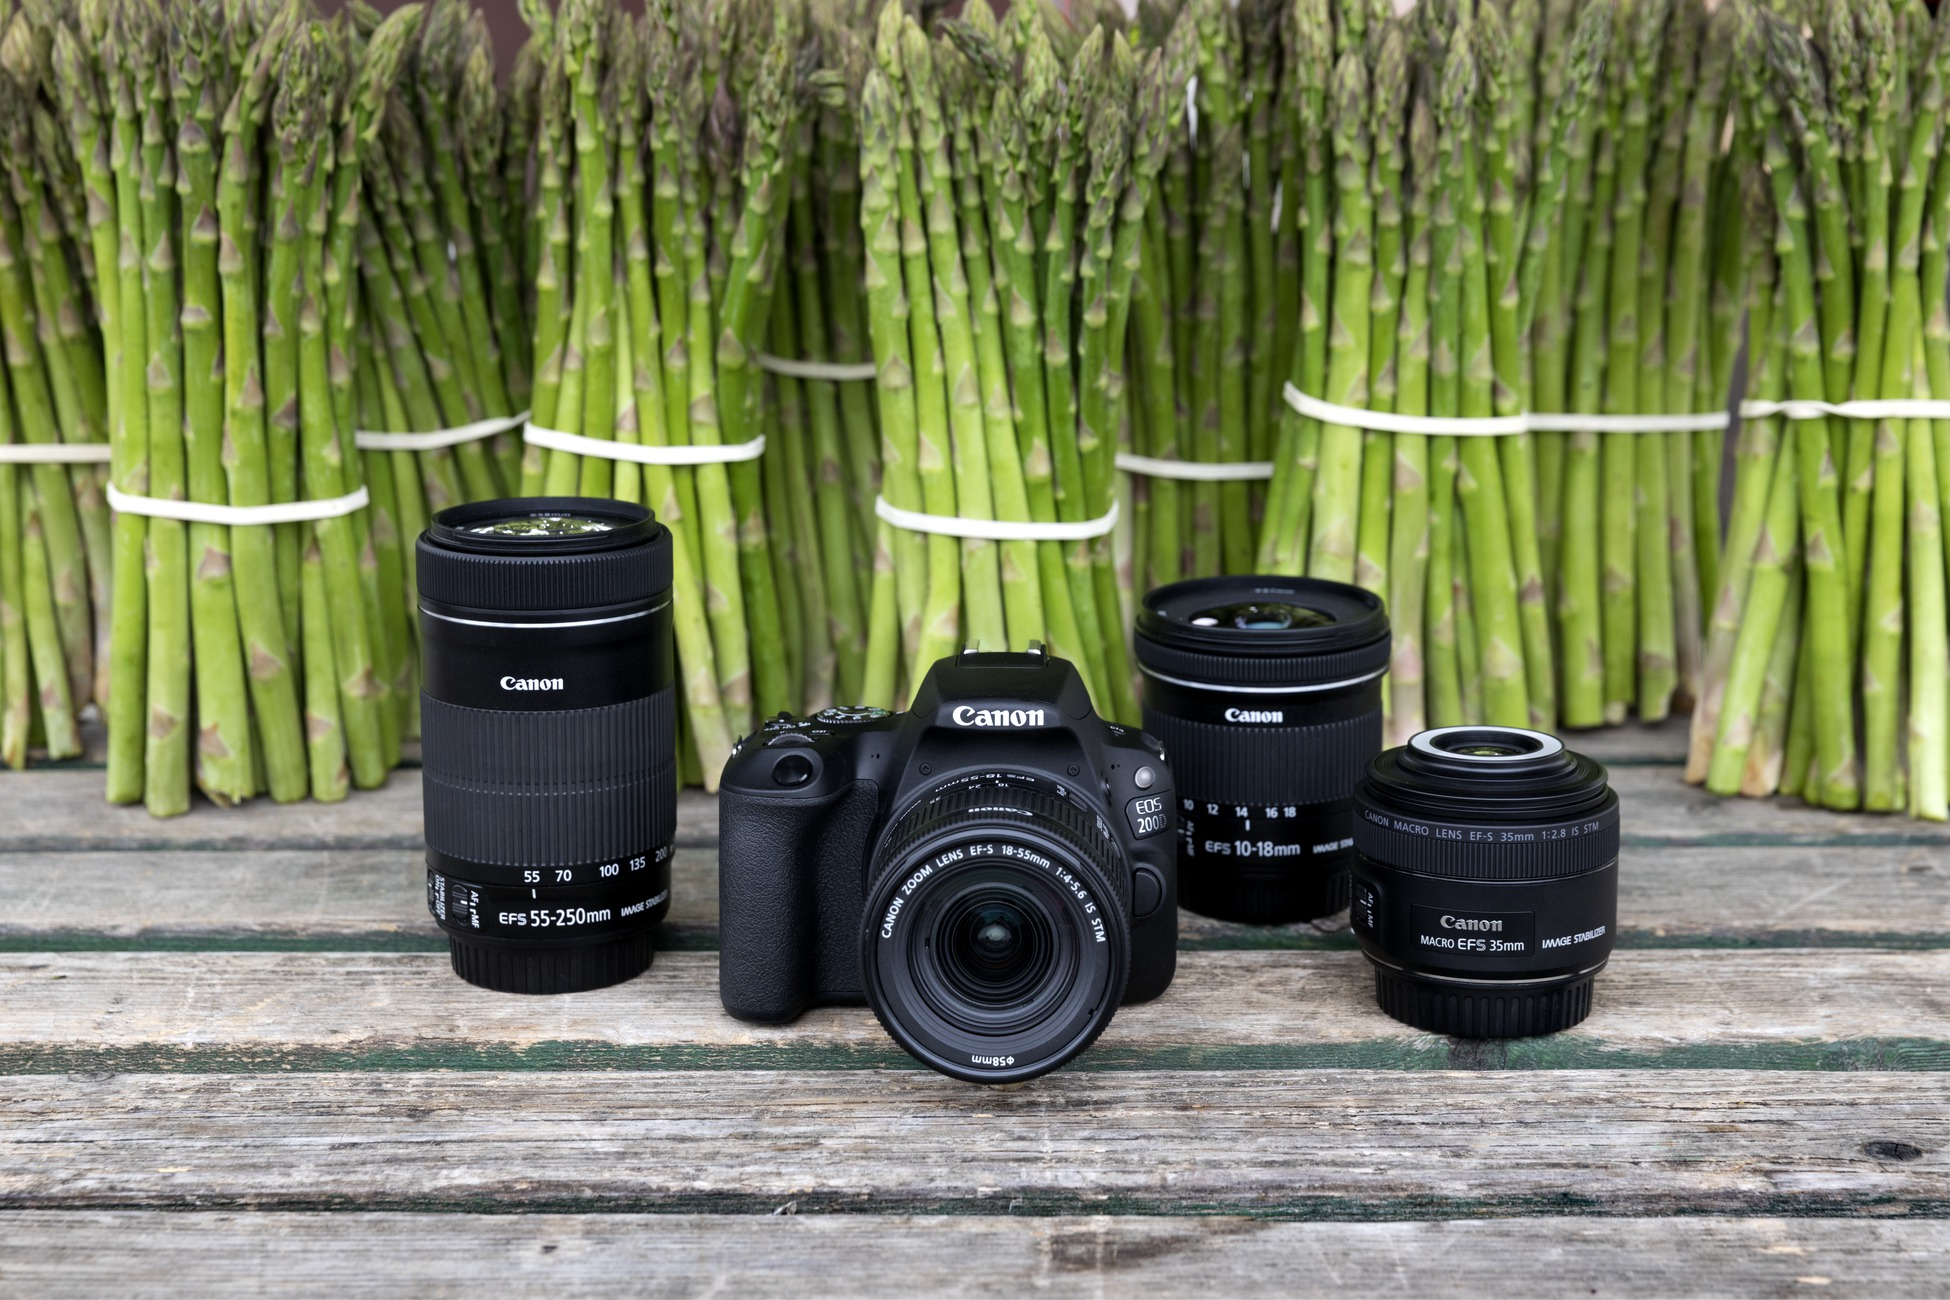 Canon reveals the EOS 200D as its latest lightweight DSLR